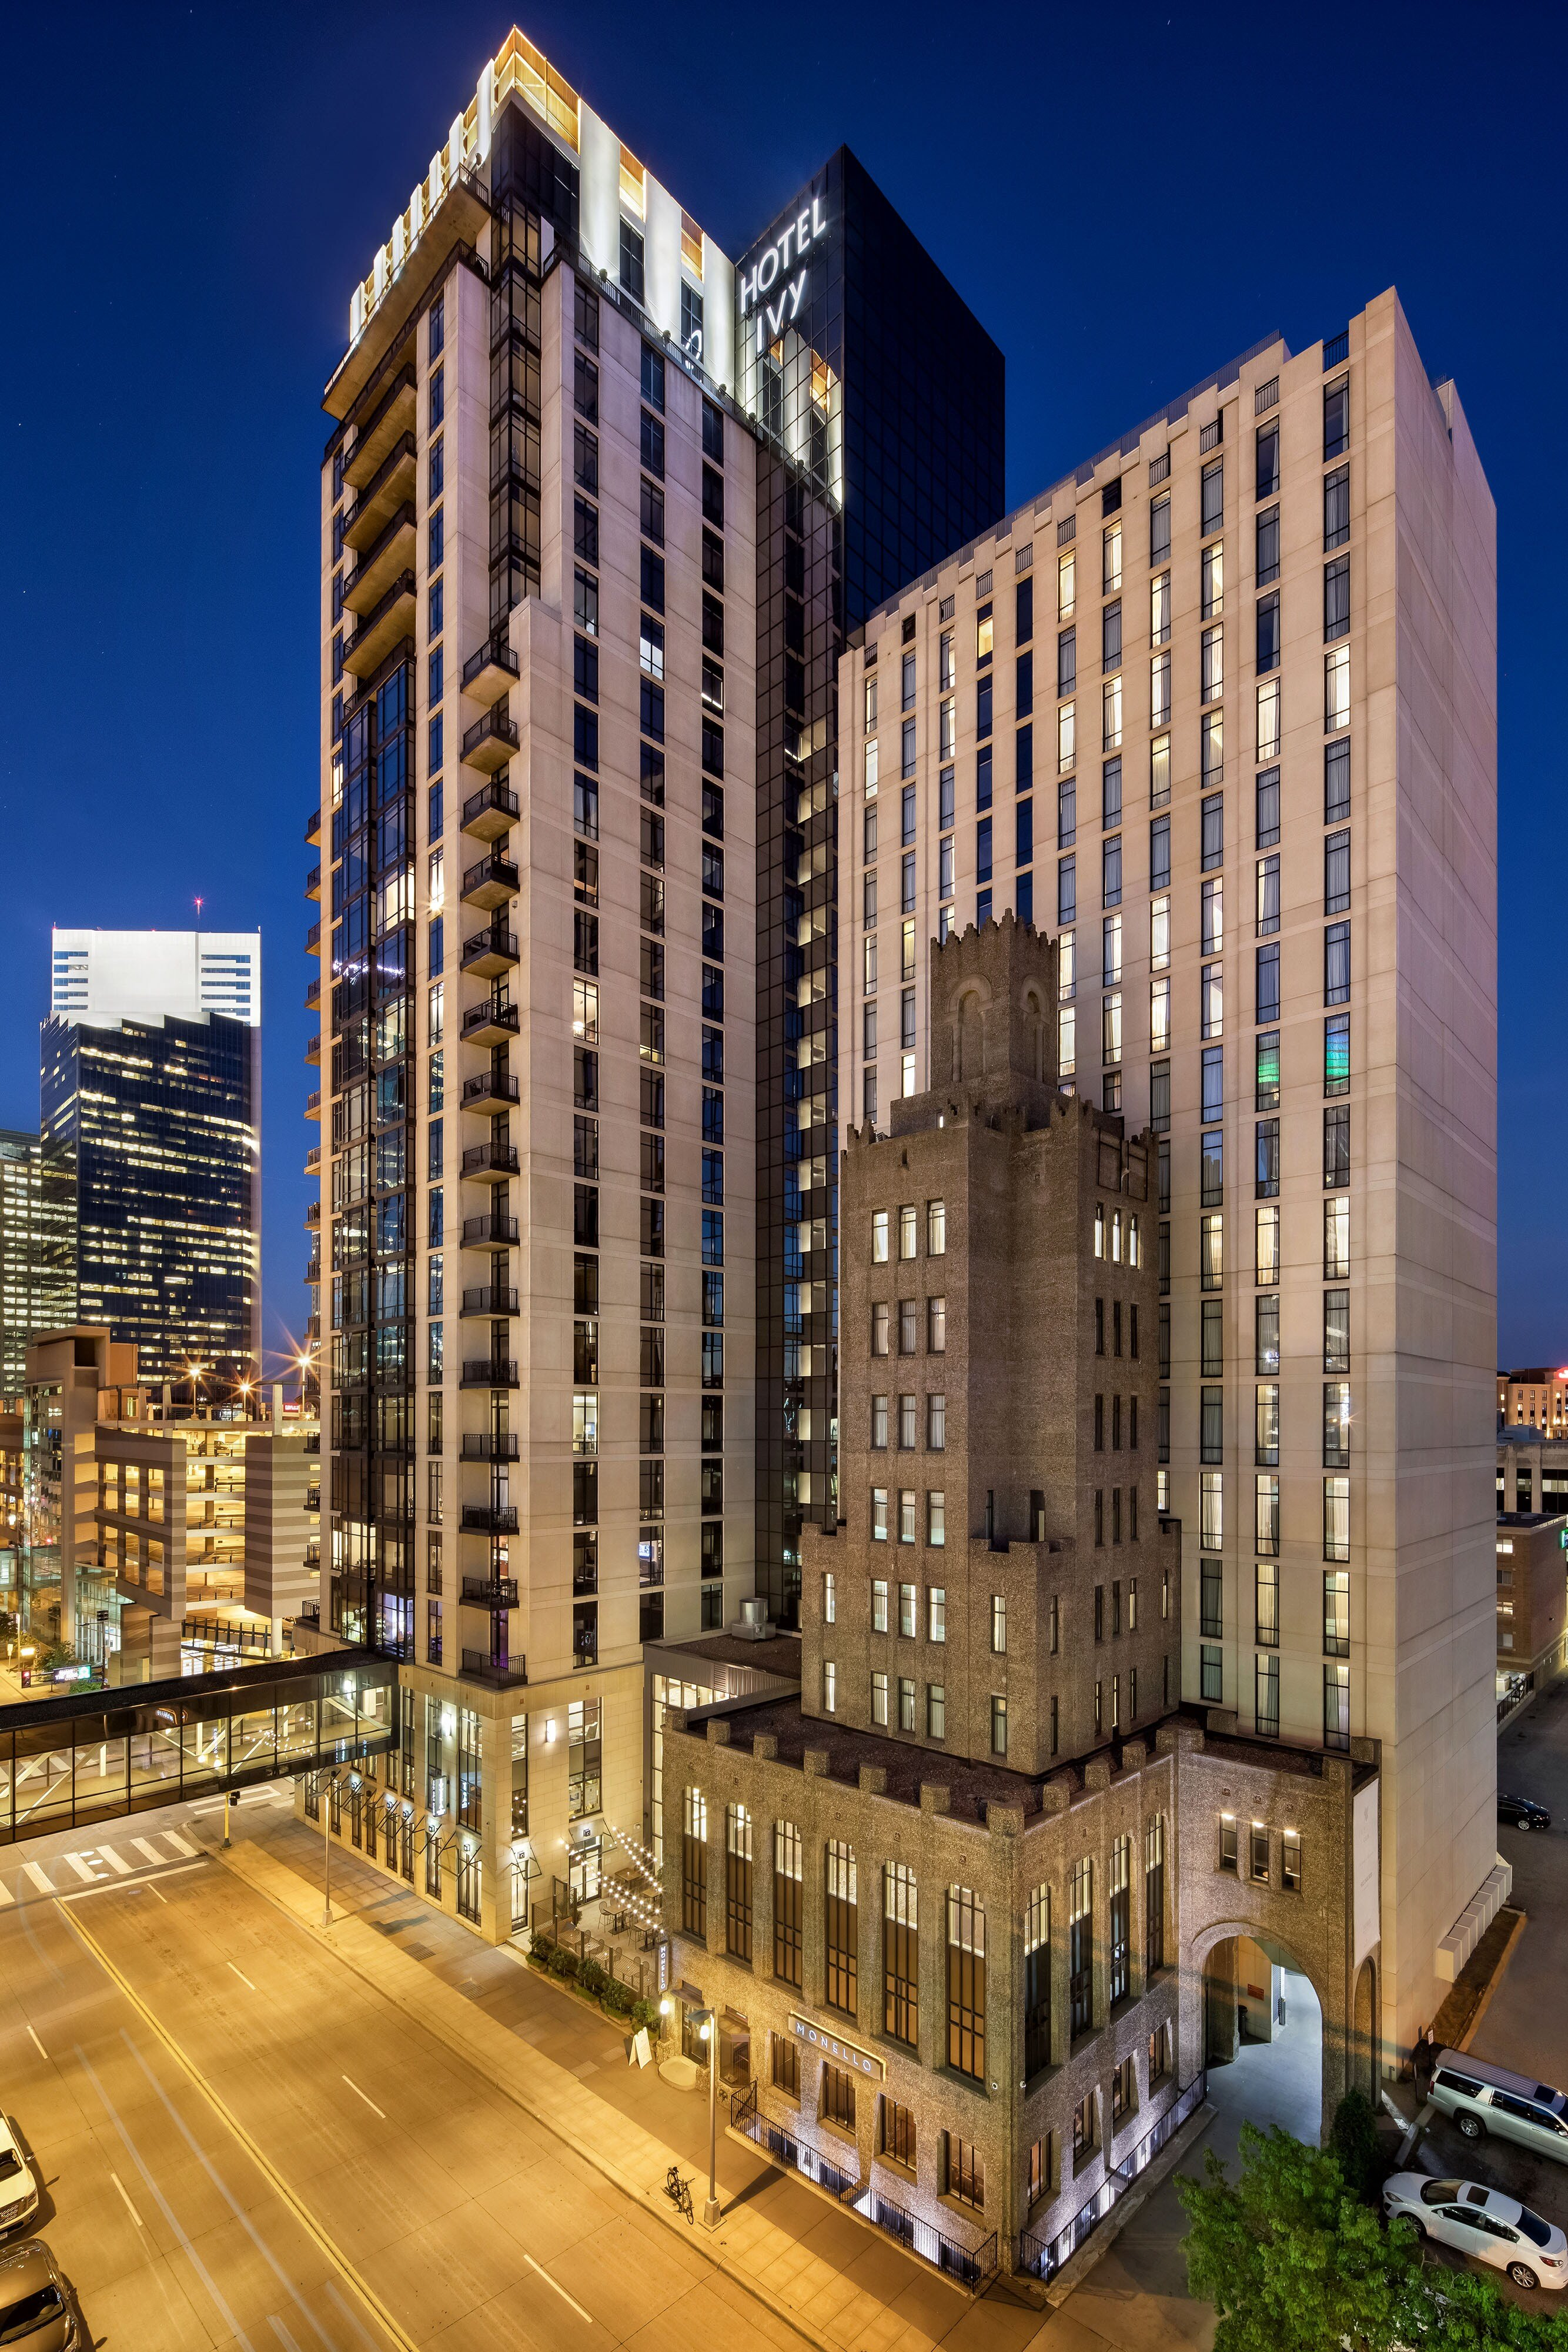 Hotel Ivy, a Luxury Collection Hotel